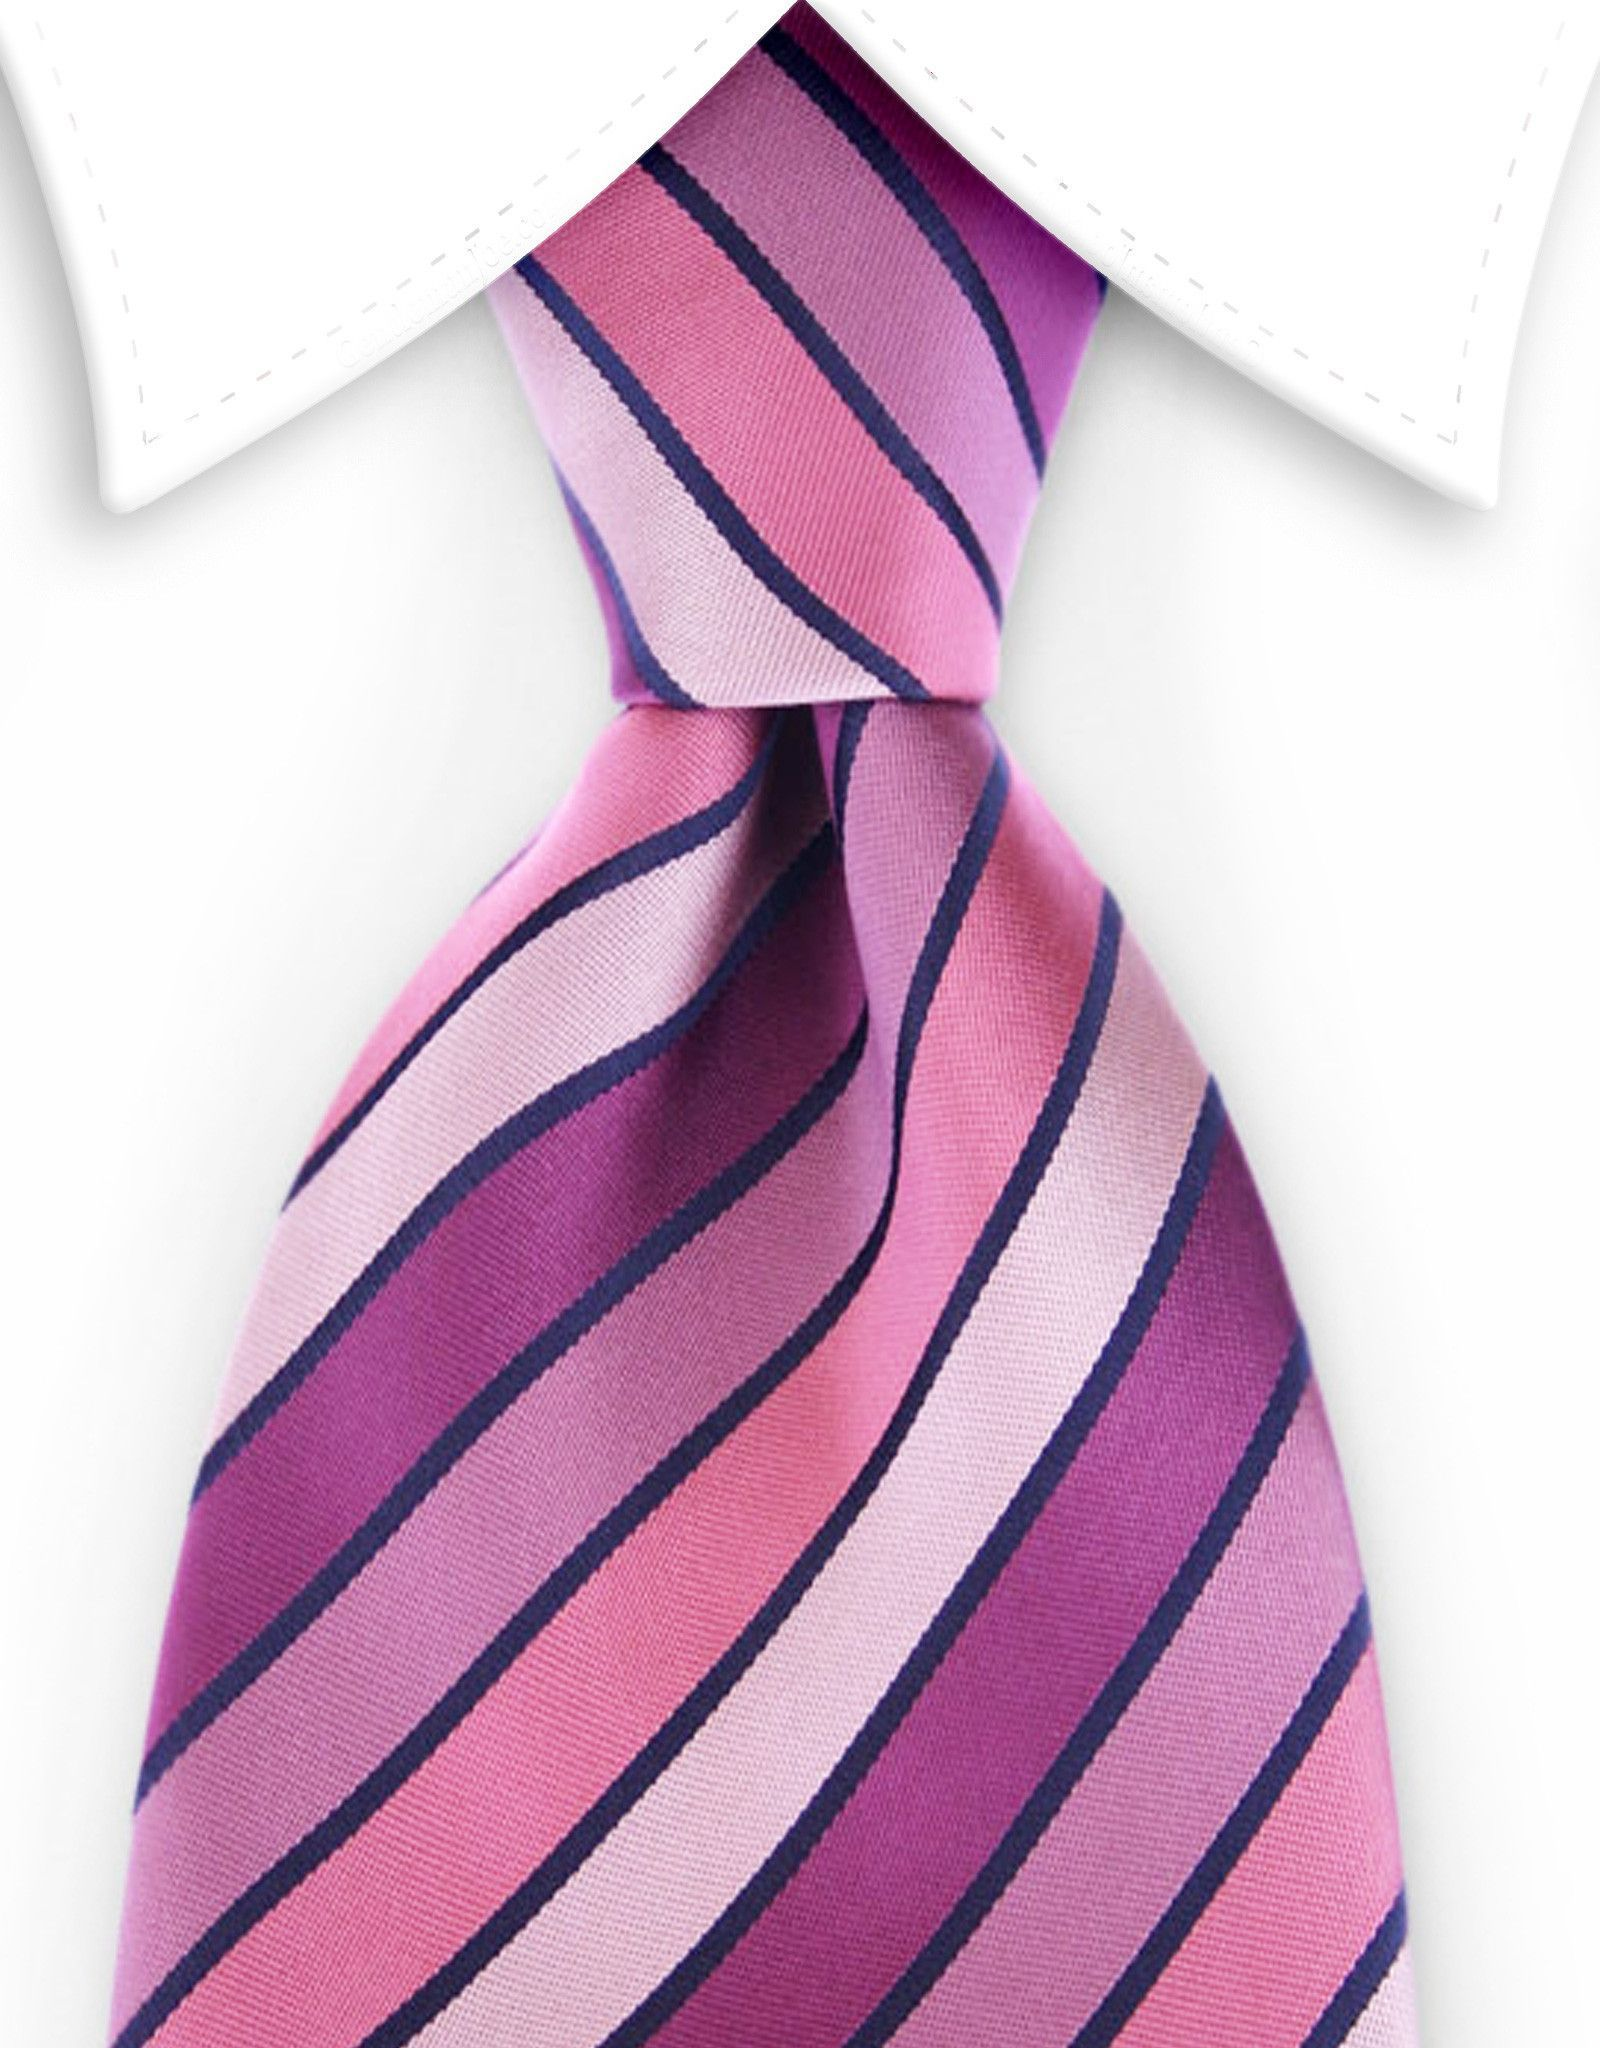 d45a463fabea Variegated Pinks and Purple Striped Tie   Products   Tie, Pink, Mens ...